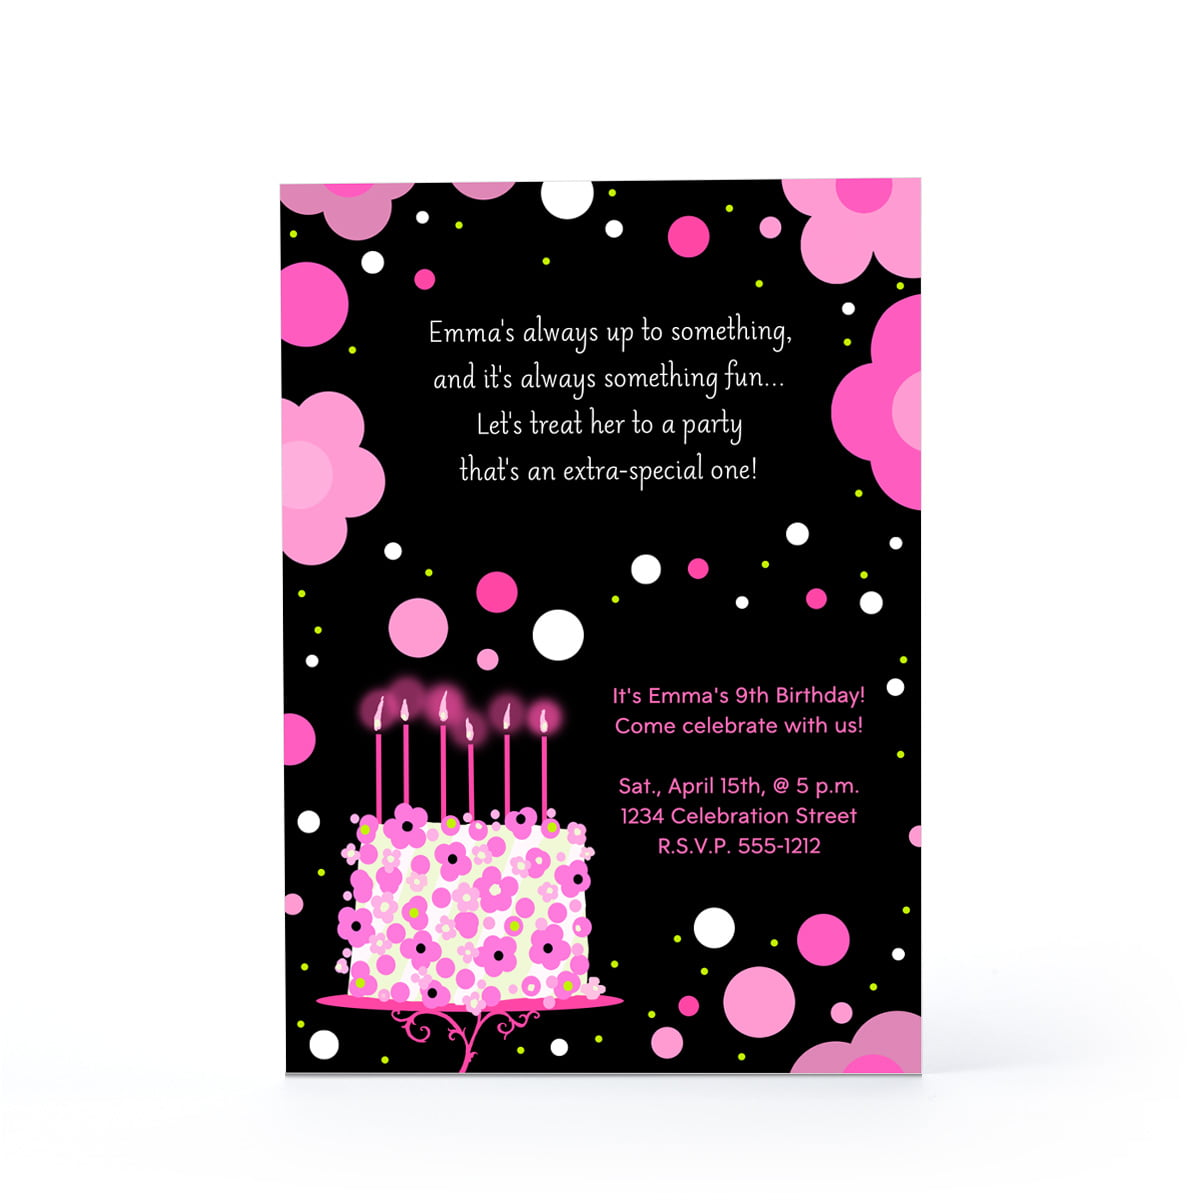 Baby Shower Invitation Templates For Girls with great invitations design